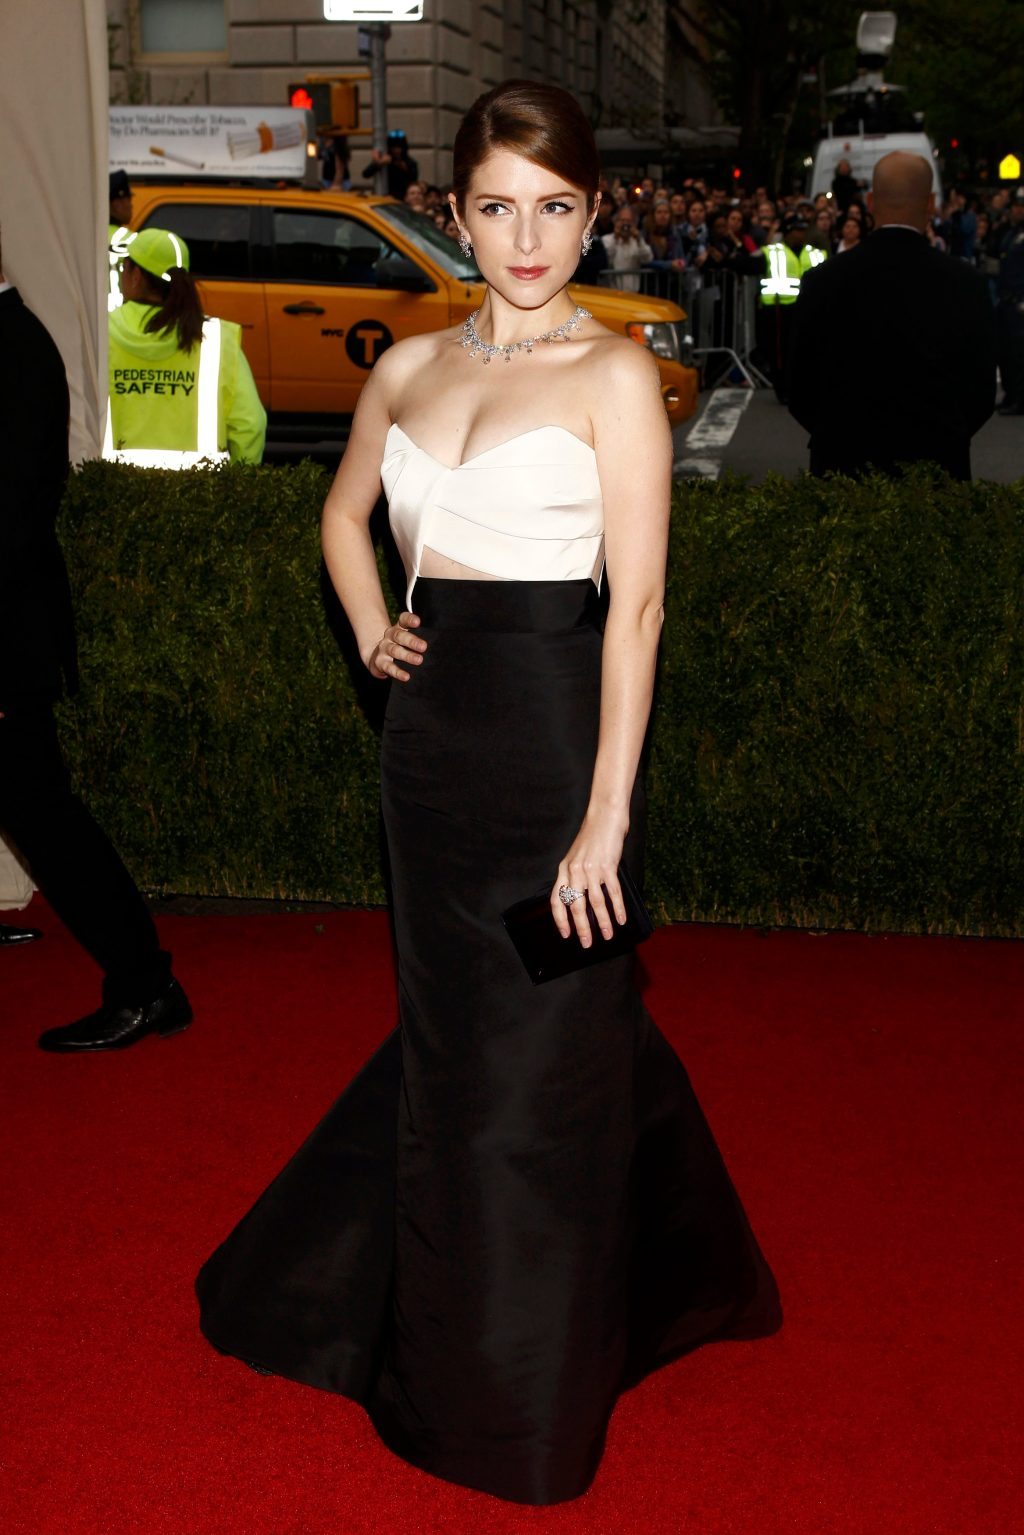 Anna Kendrick arrives at the Metropolitan Museum of Art Costume Institute Gala Benefit in New York